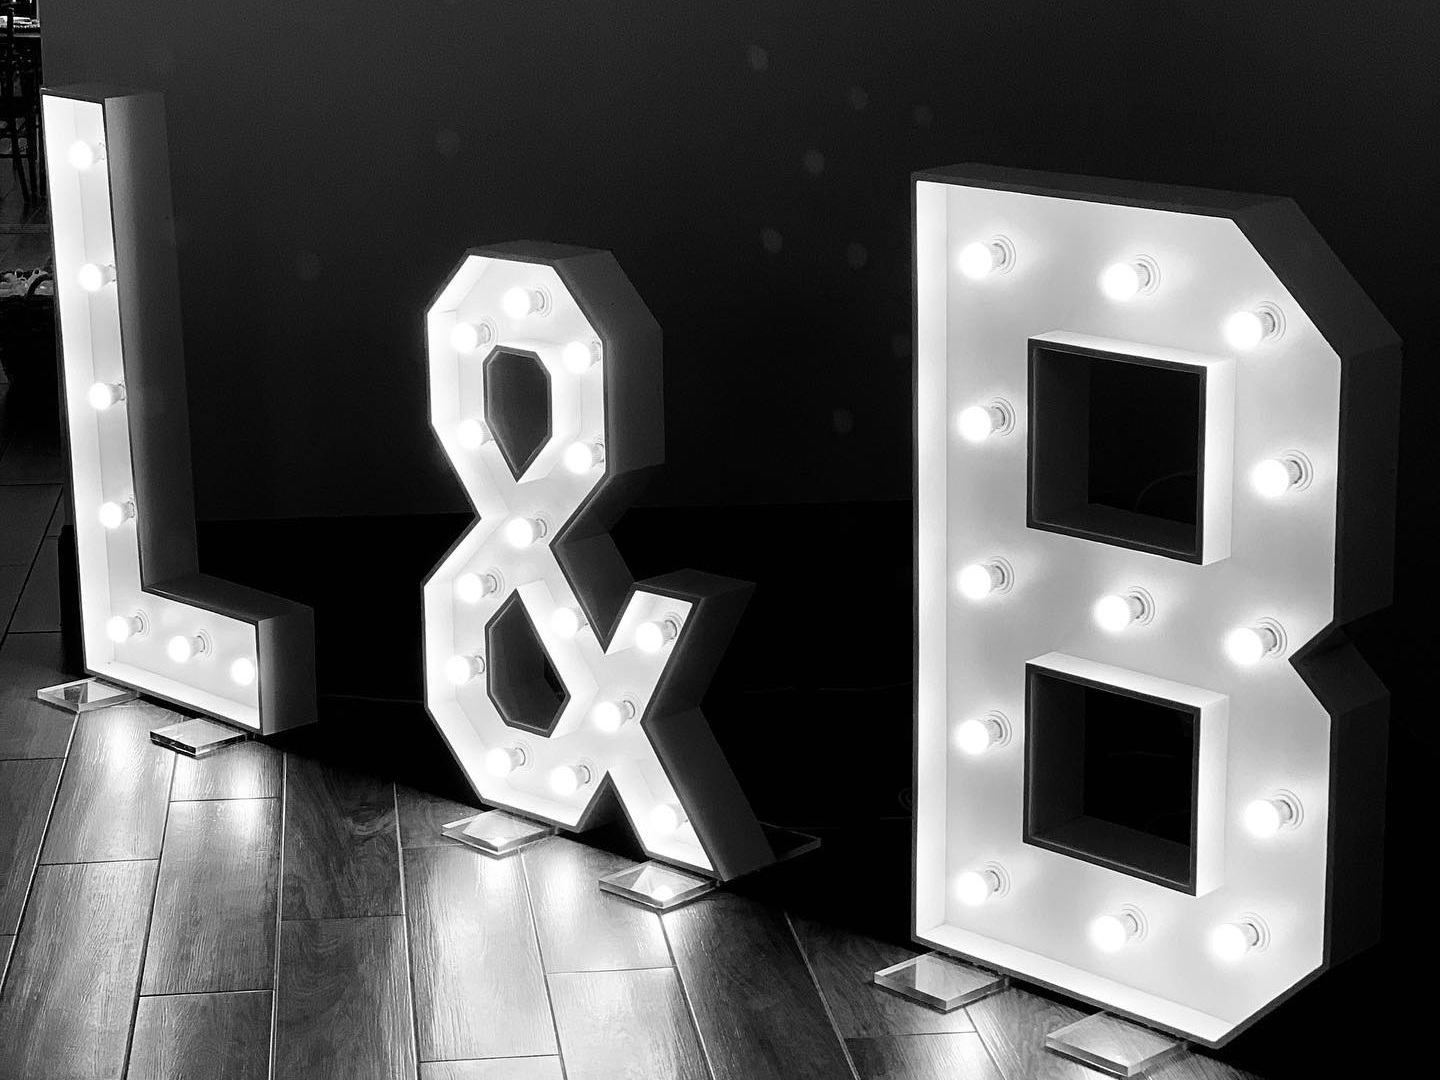 Symbols - We also carry symbols such as the hashtag symbol, heart symbol and ampersand symbol.If its not in our inventory, please ask about custom orders.